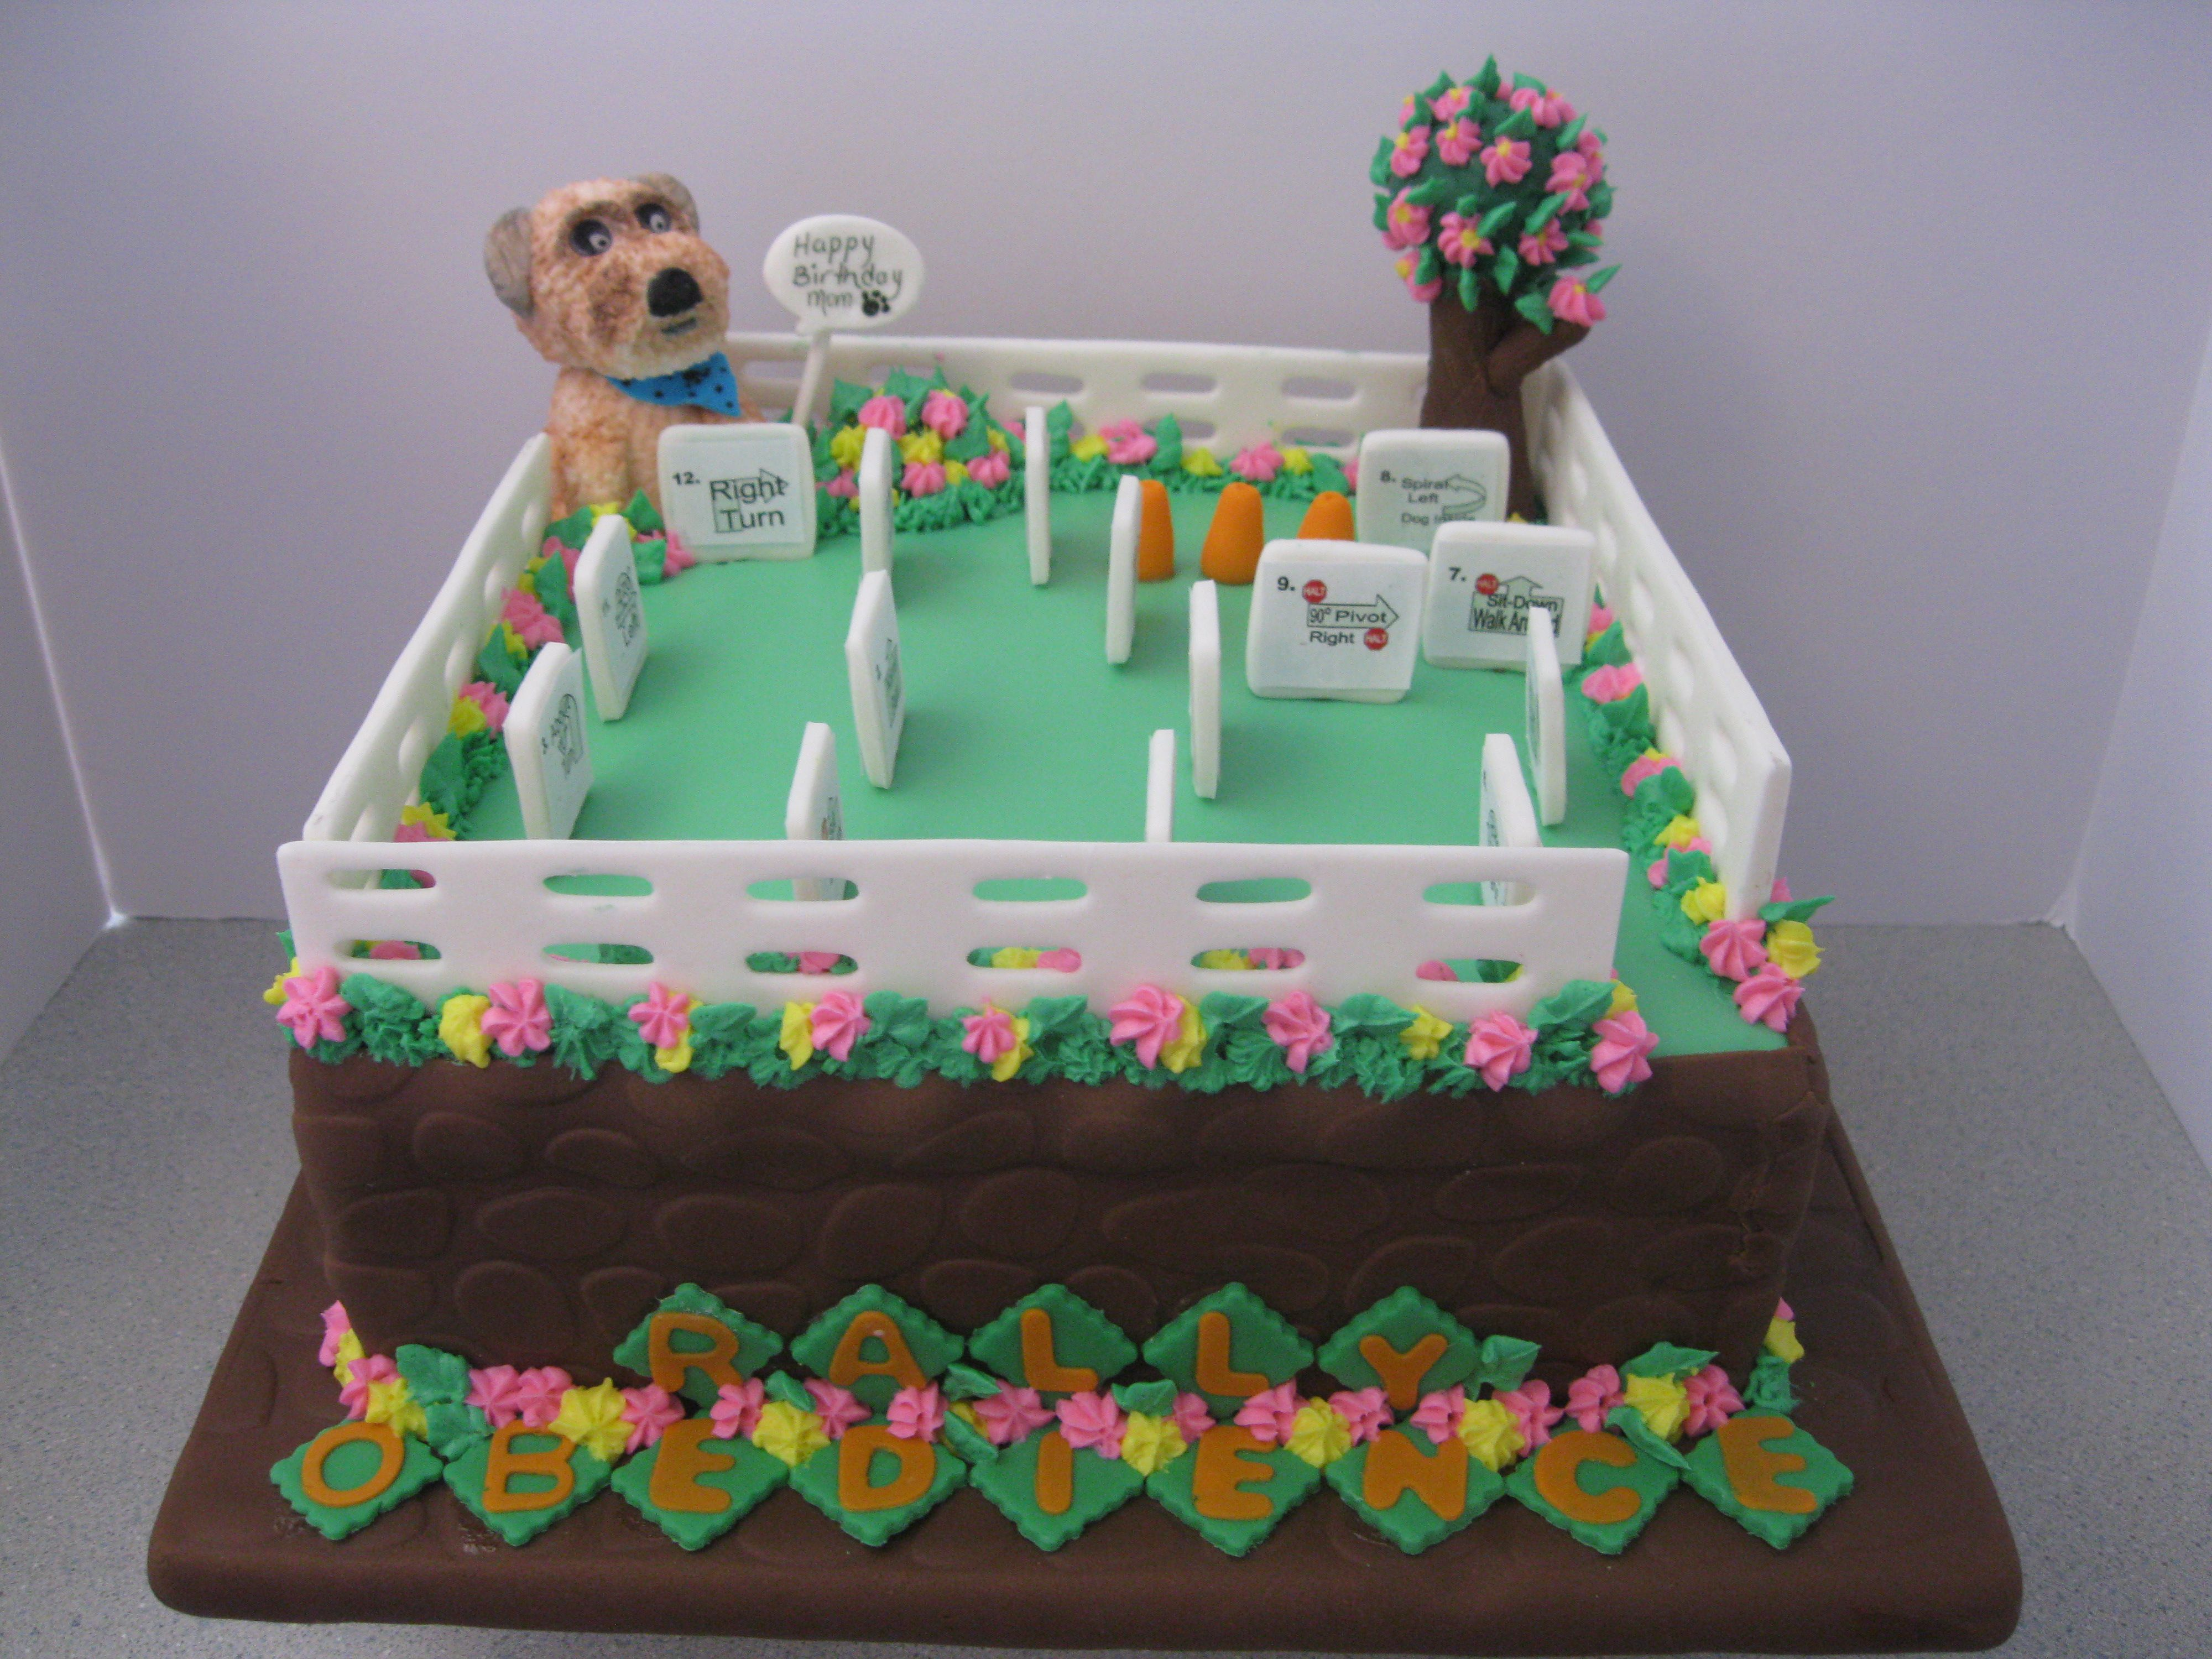 Chicken Birthday Cake For Dogs ~ Dog rally obedience birthday cake cakes that i have created